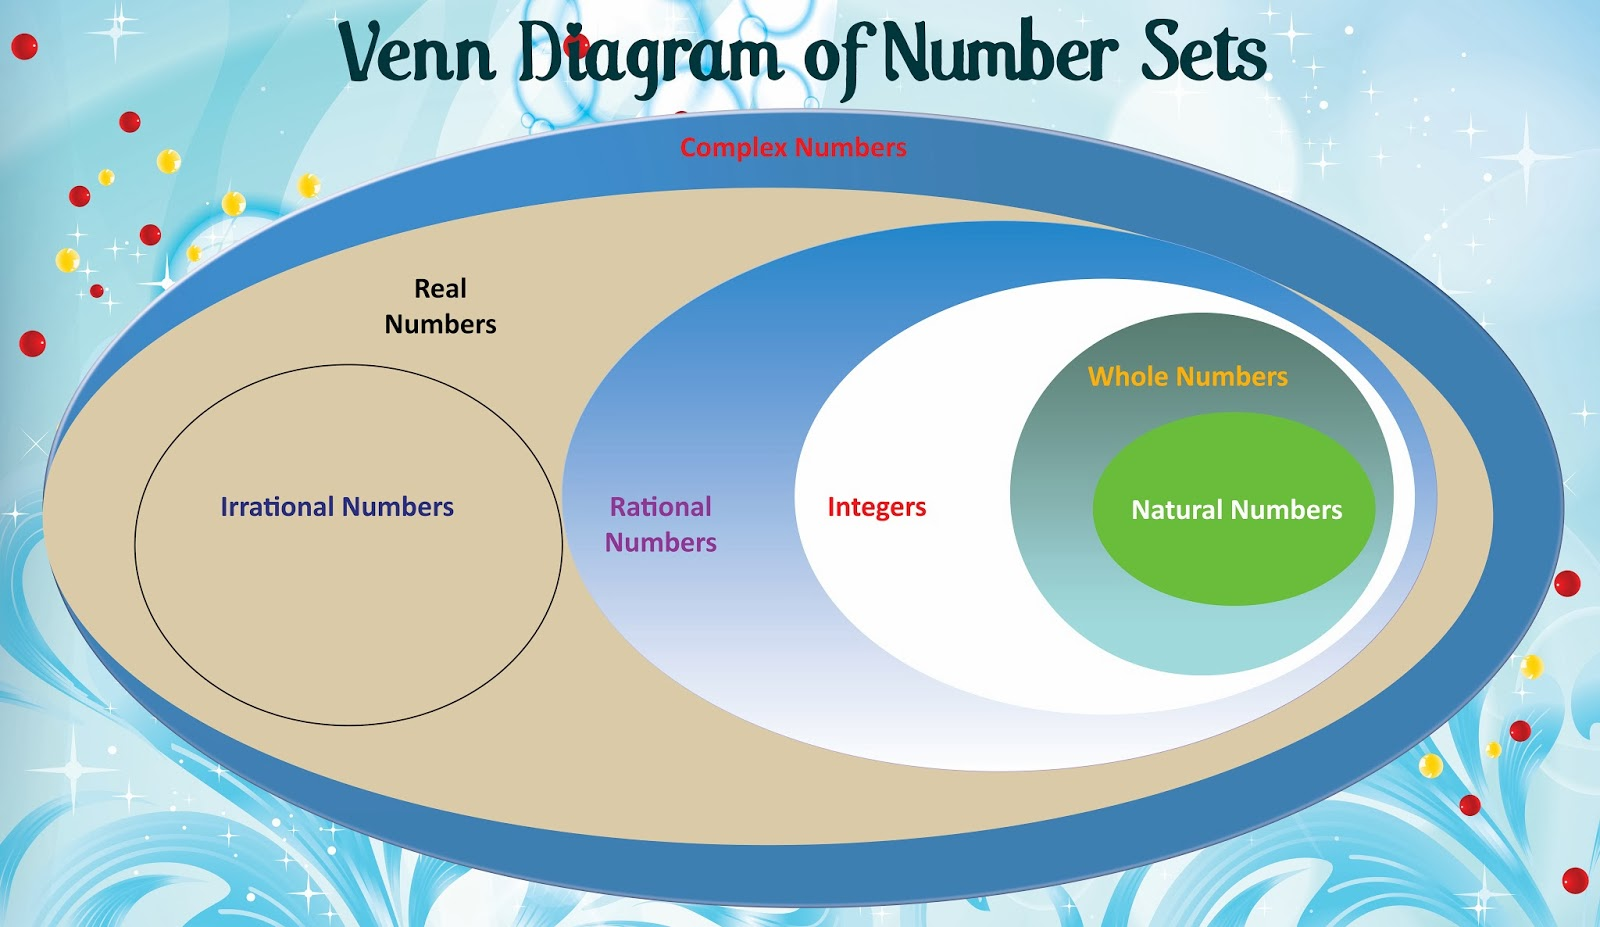 Rational numbers with venn diagram machine drawing symbols how to i love khmercambodia 2013 zaman diagram of number sets banner 380 x 220 2 2013 rational numbers with venn diagram rational numbers with venn diagram pooptronica Images